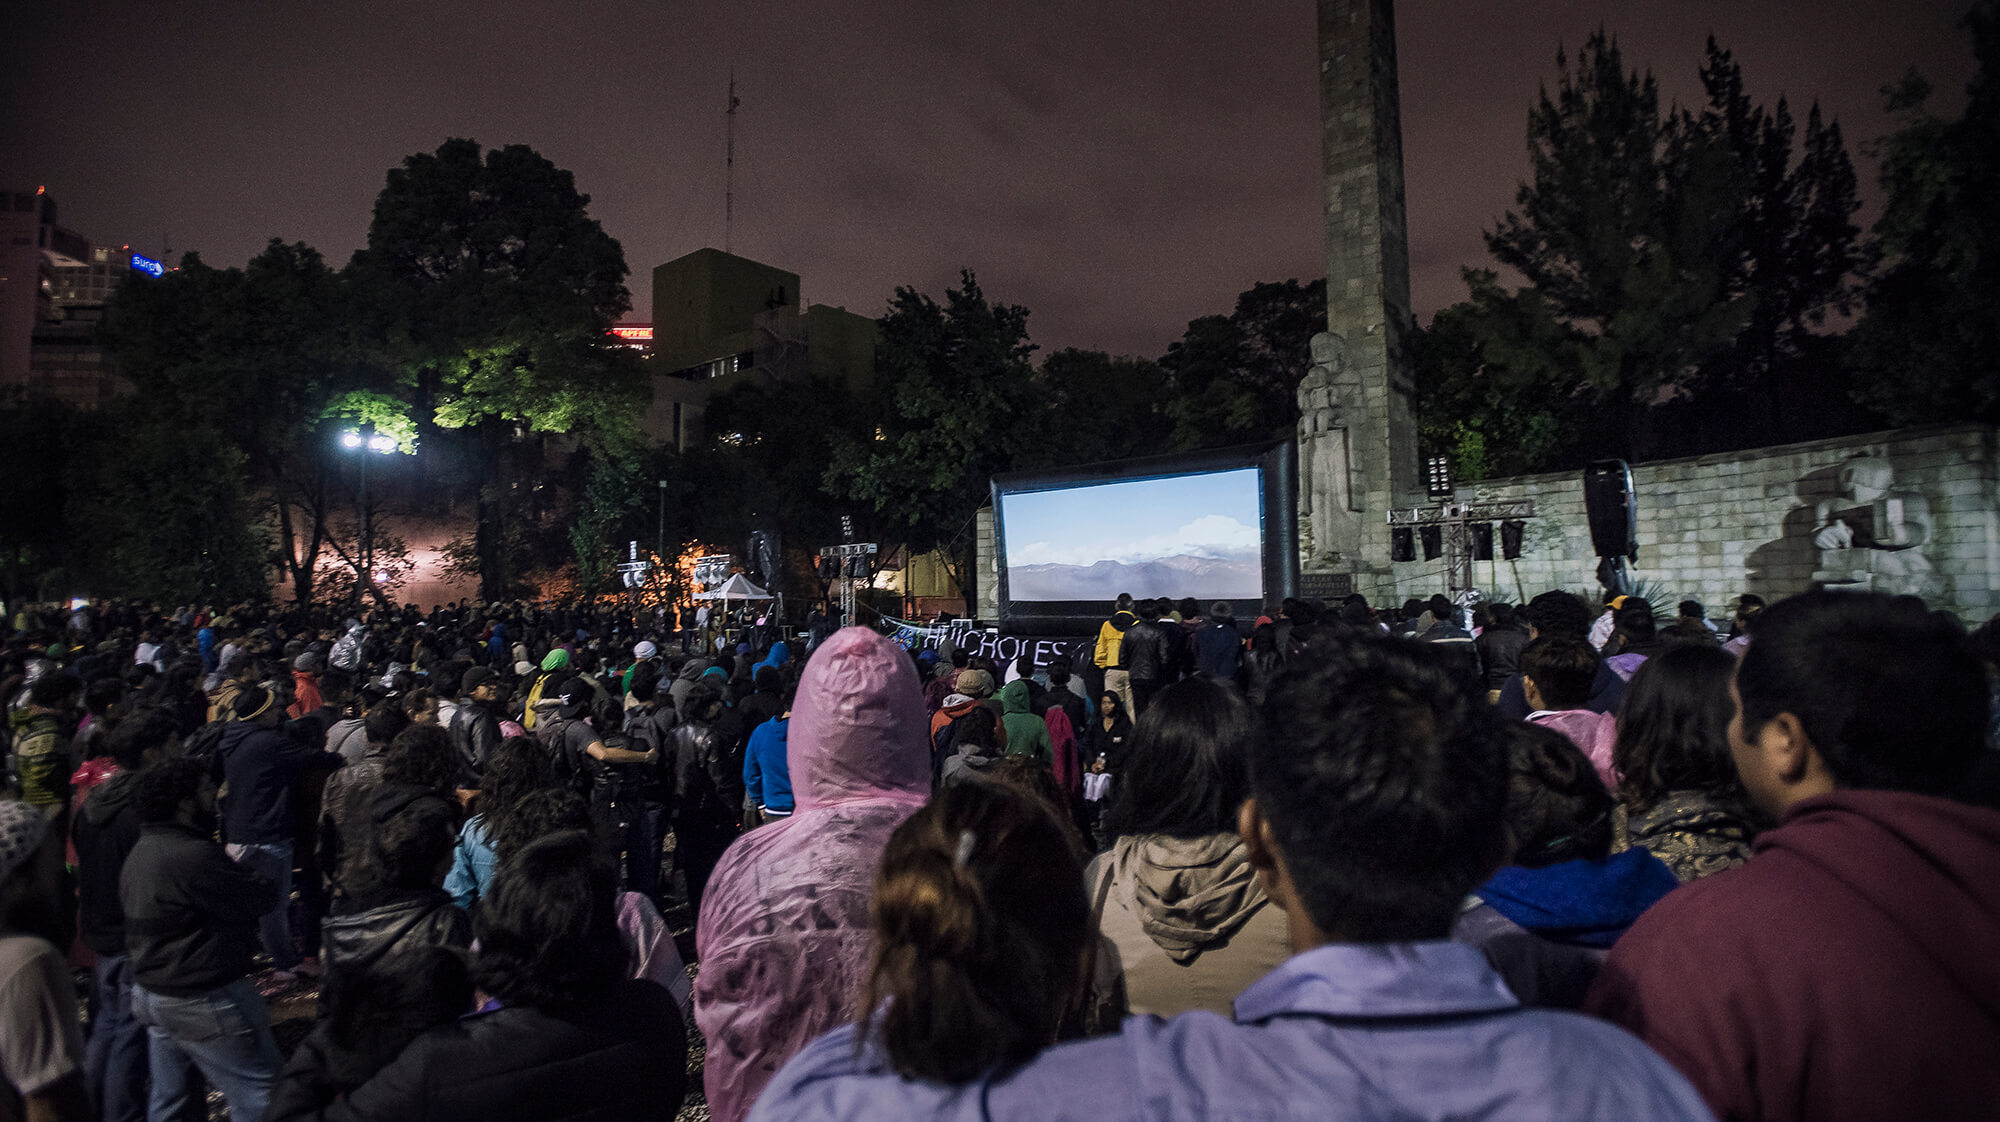 Despite a rainstorm and a last-minute change of venue, more than 2,500 turned out for the film's outdoor screening in Mexico City. (Credit: José Andrés Solórzano)